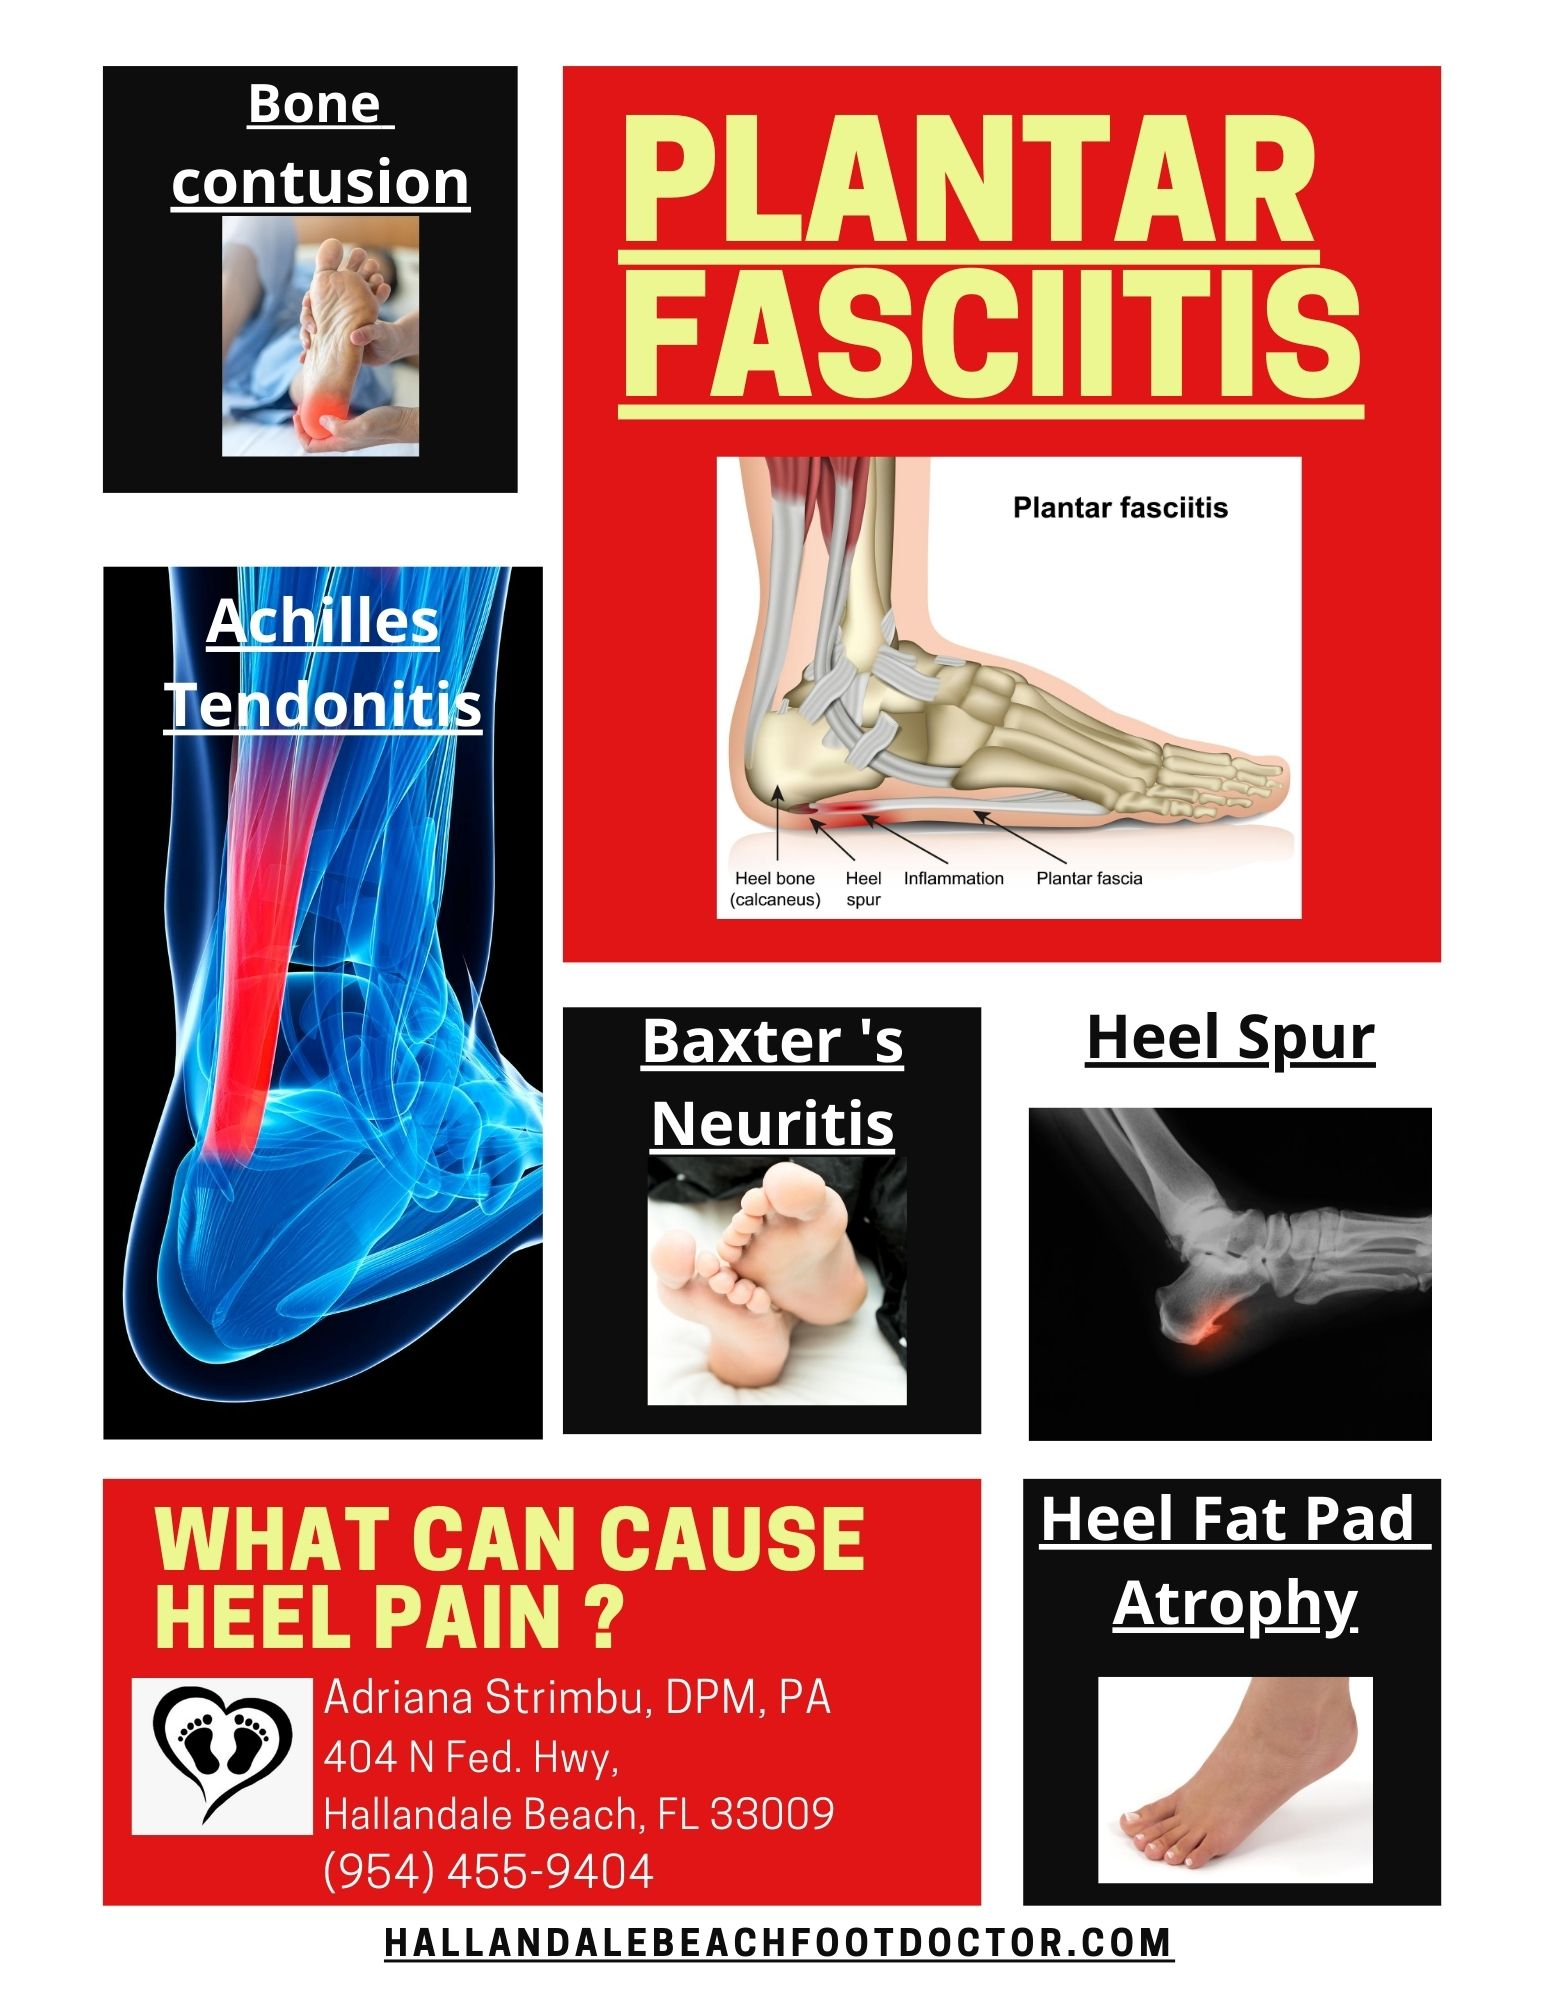 What Can Cause Heel Pain?